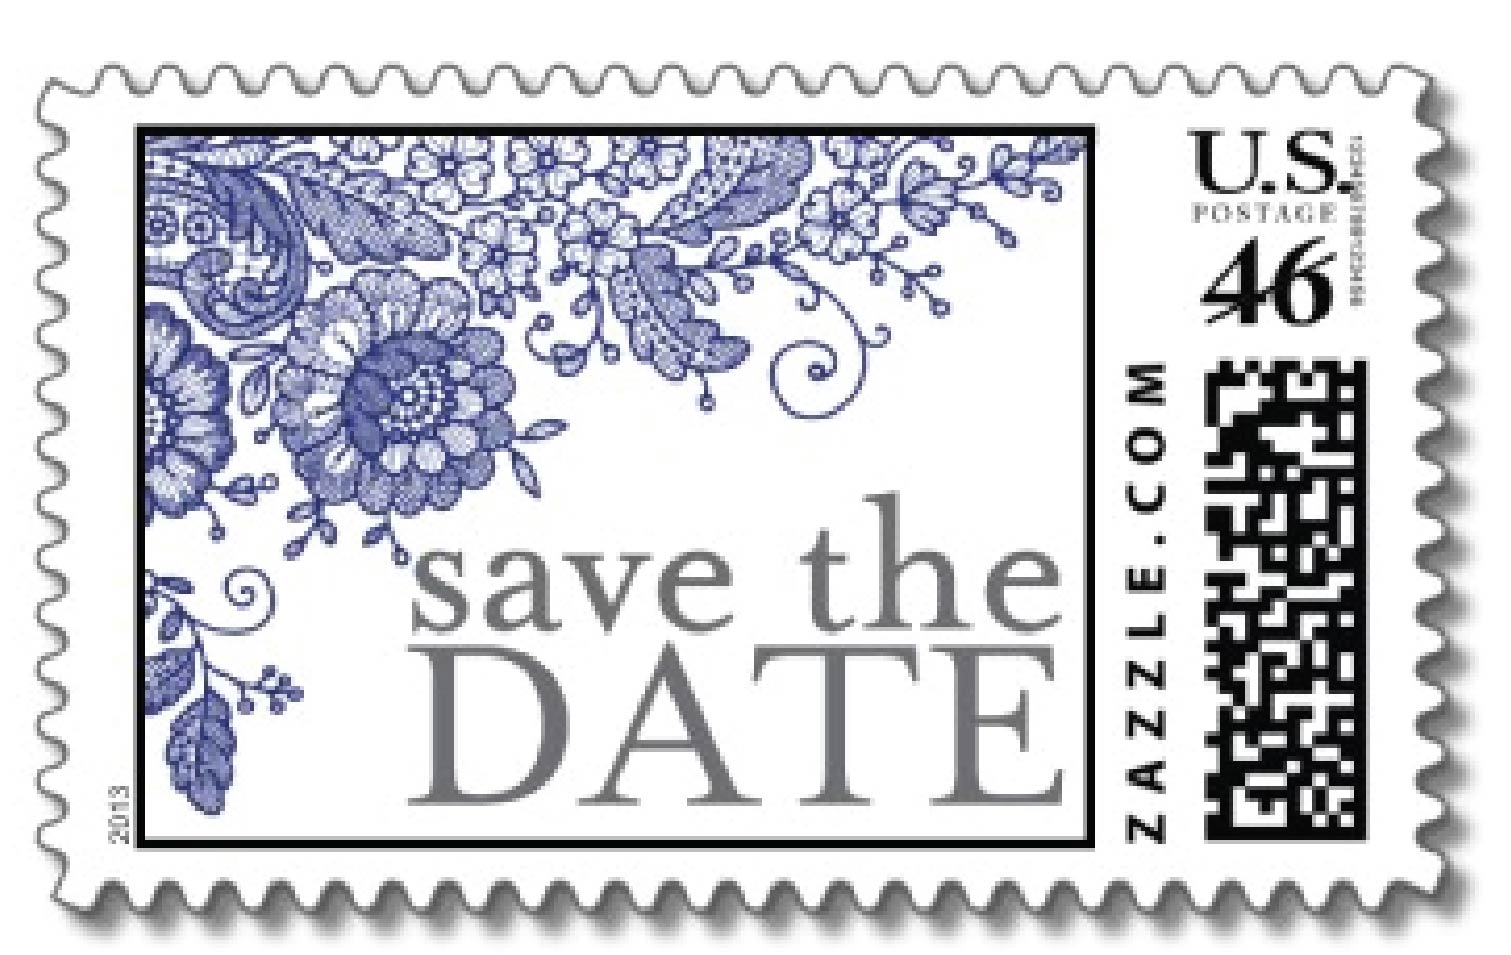 Diy archives pittsburgh luxury wedding invitations for Post office design your own stamps